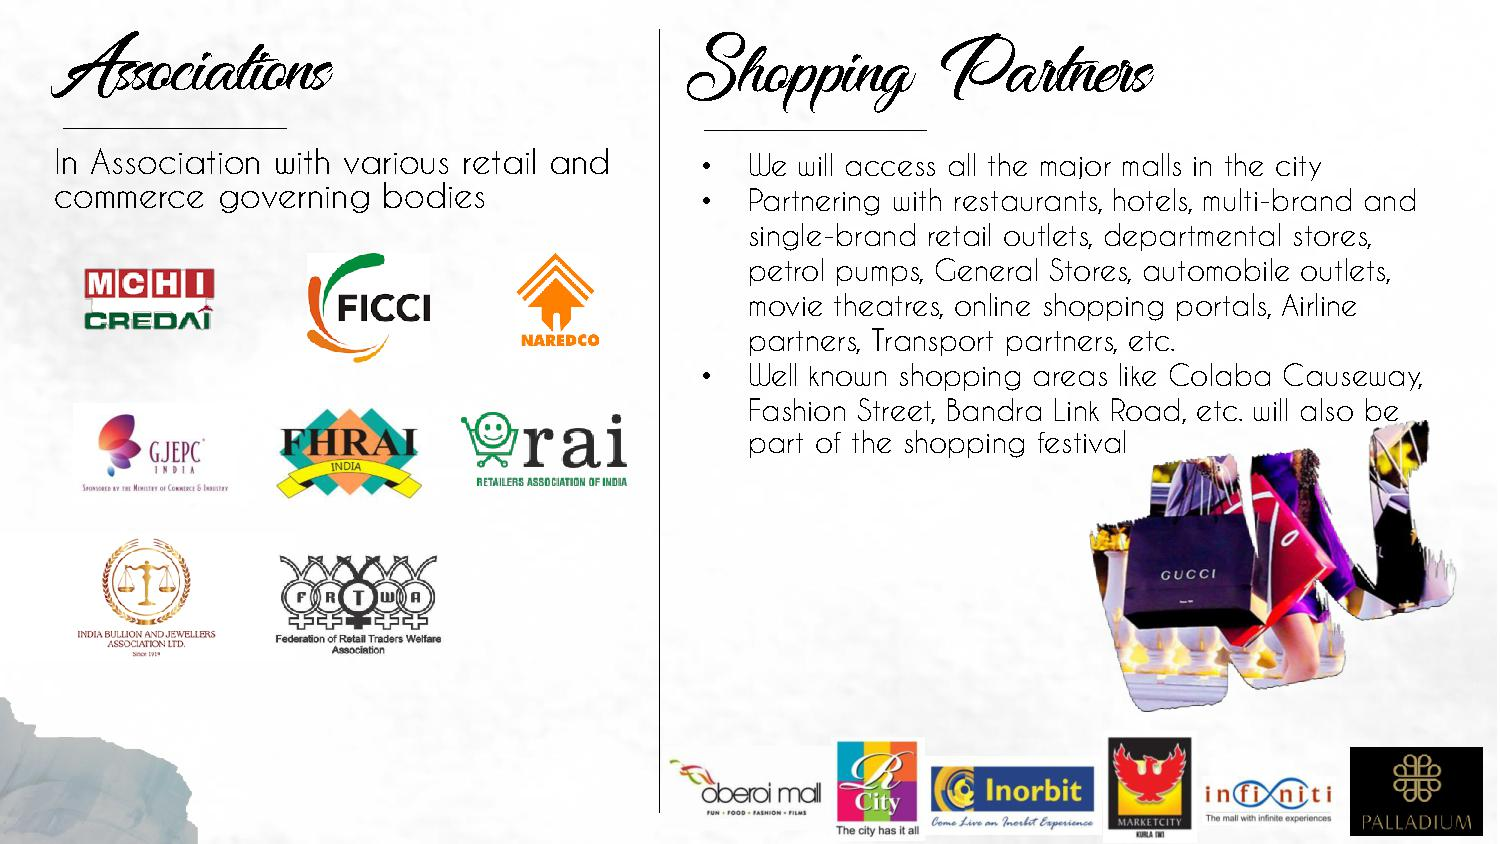 Associations In Association with various retail and commerce governing bodies Shopping Partners • We will access all the major malls in the city • Partnering with restaurants, hotels, multi-brand and single-brand retail outlets, departmental stores, petrol pumps, General Stores, automobile outlets, movie theatres, online shopping portals, Airline partners, Transport partners, etc. • Well known shopping areas like Colaba Causeway, Fashion Street, Bandra Link Road, etc. will also be part of the shopping festival